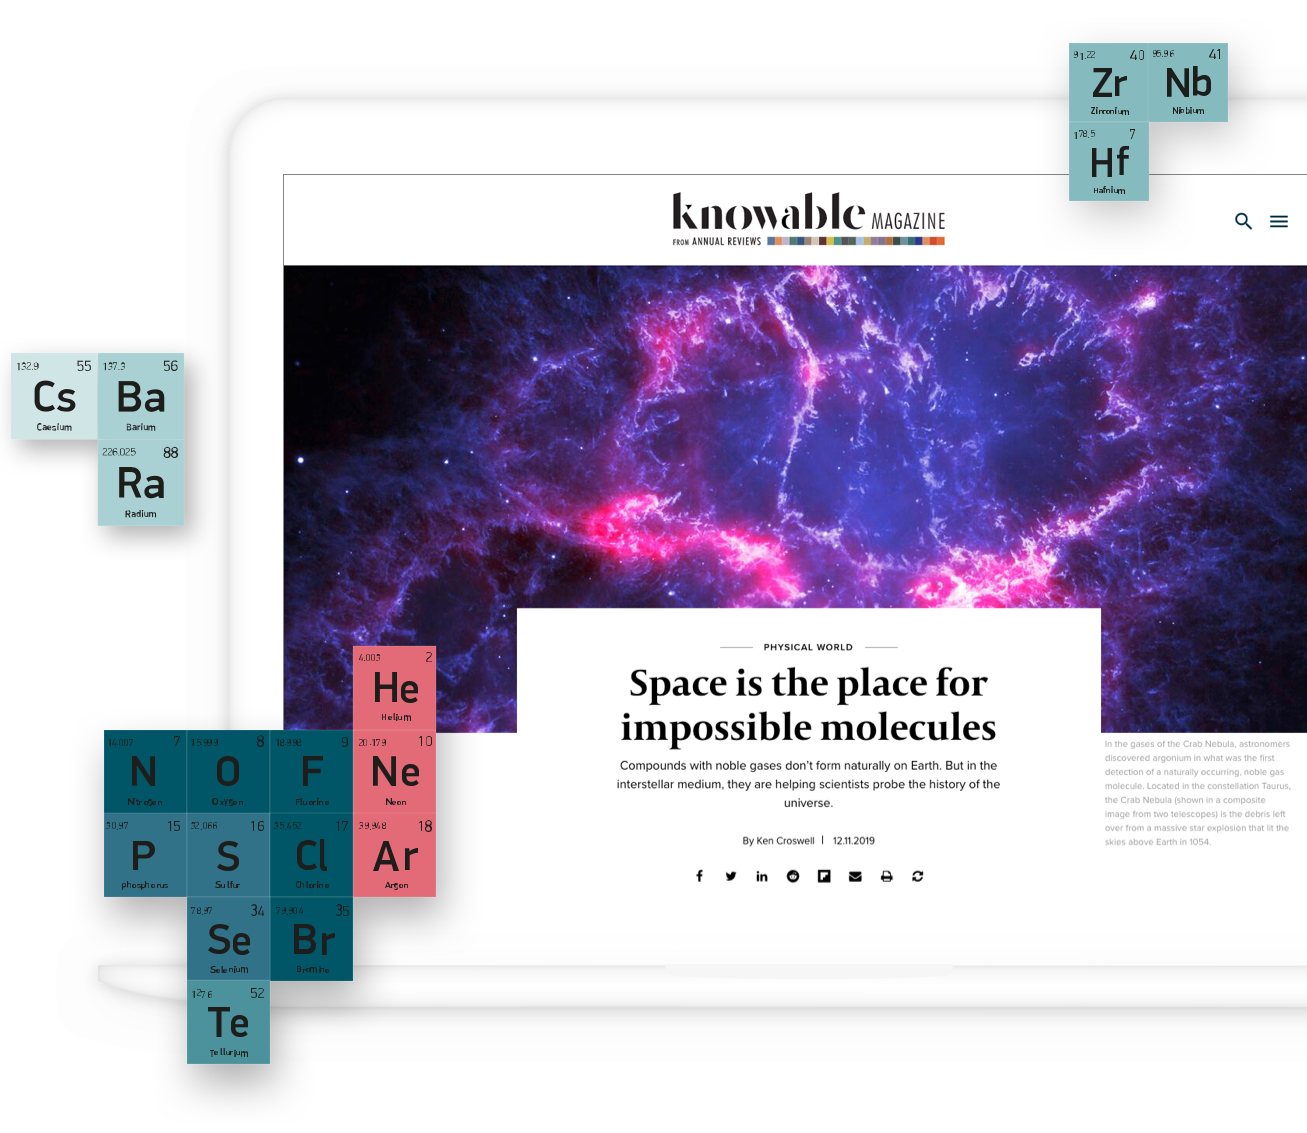 Knowable Magazine engaging design